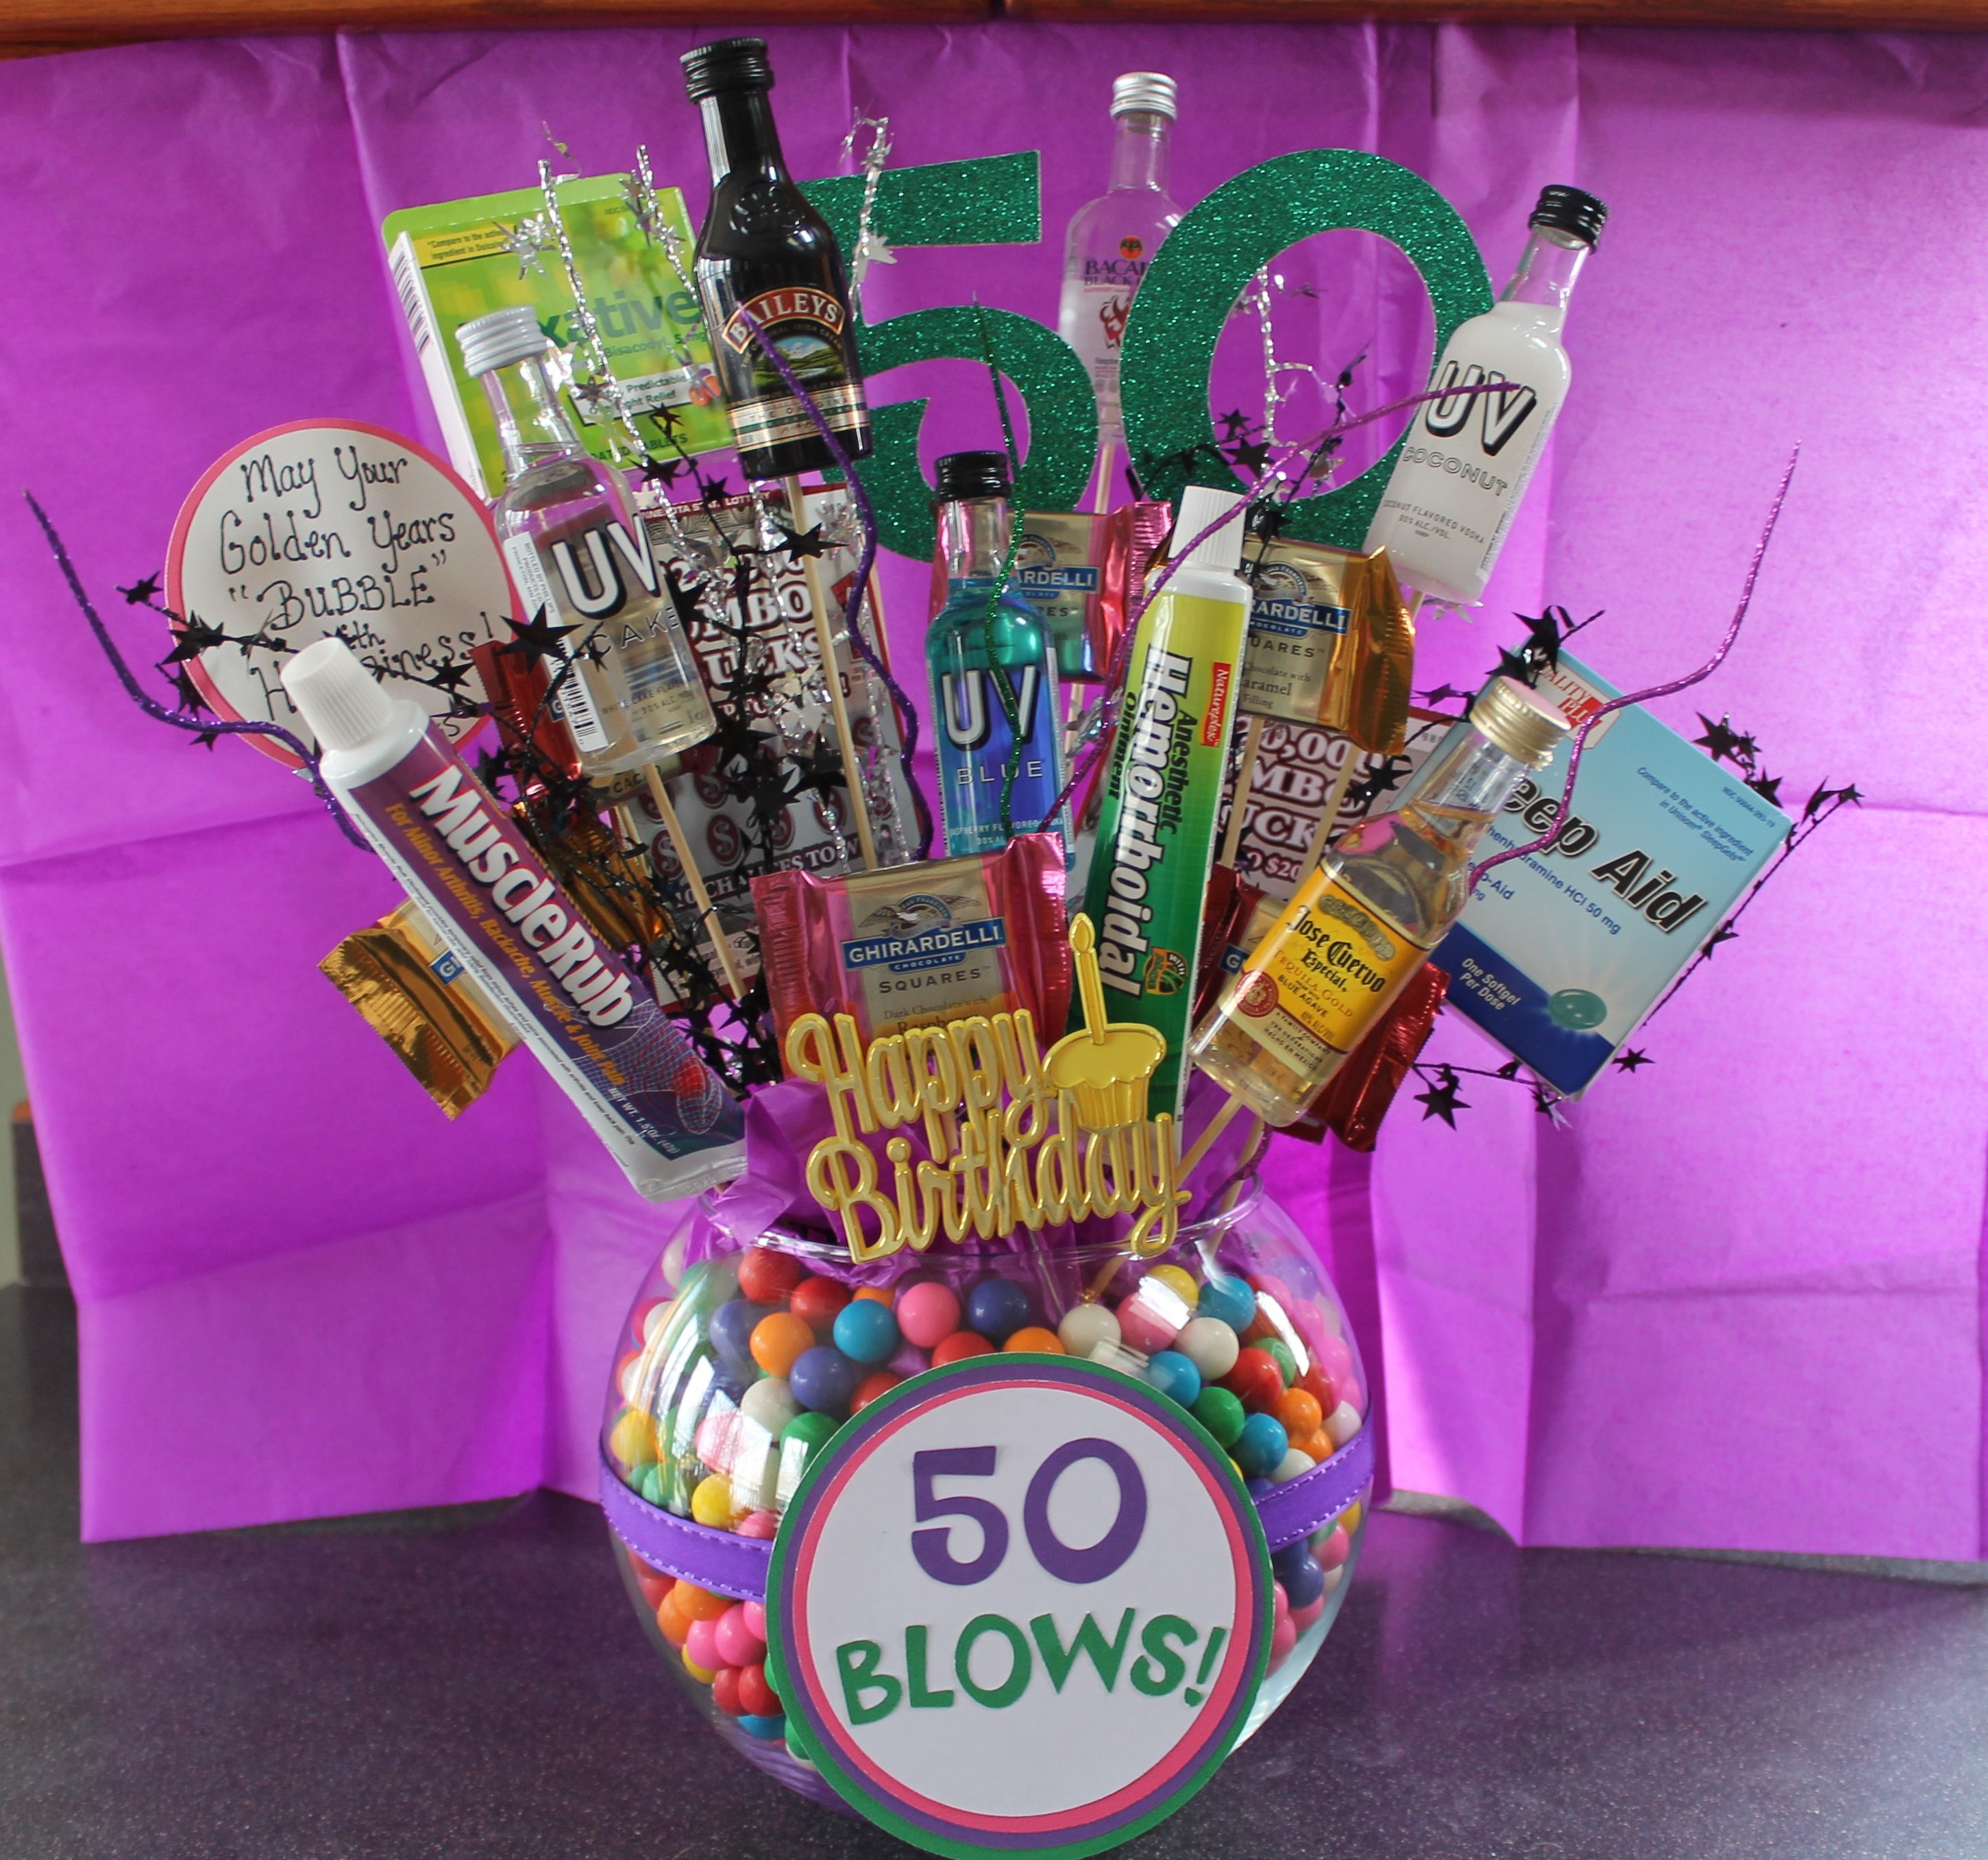 50th Blows Birthday Gift And Decoration Love The Bubble Gum Muscle Rub Liquor Other Funny Gifts